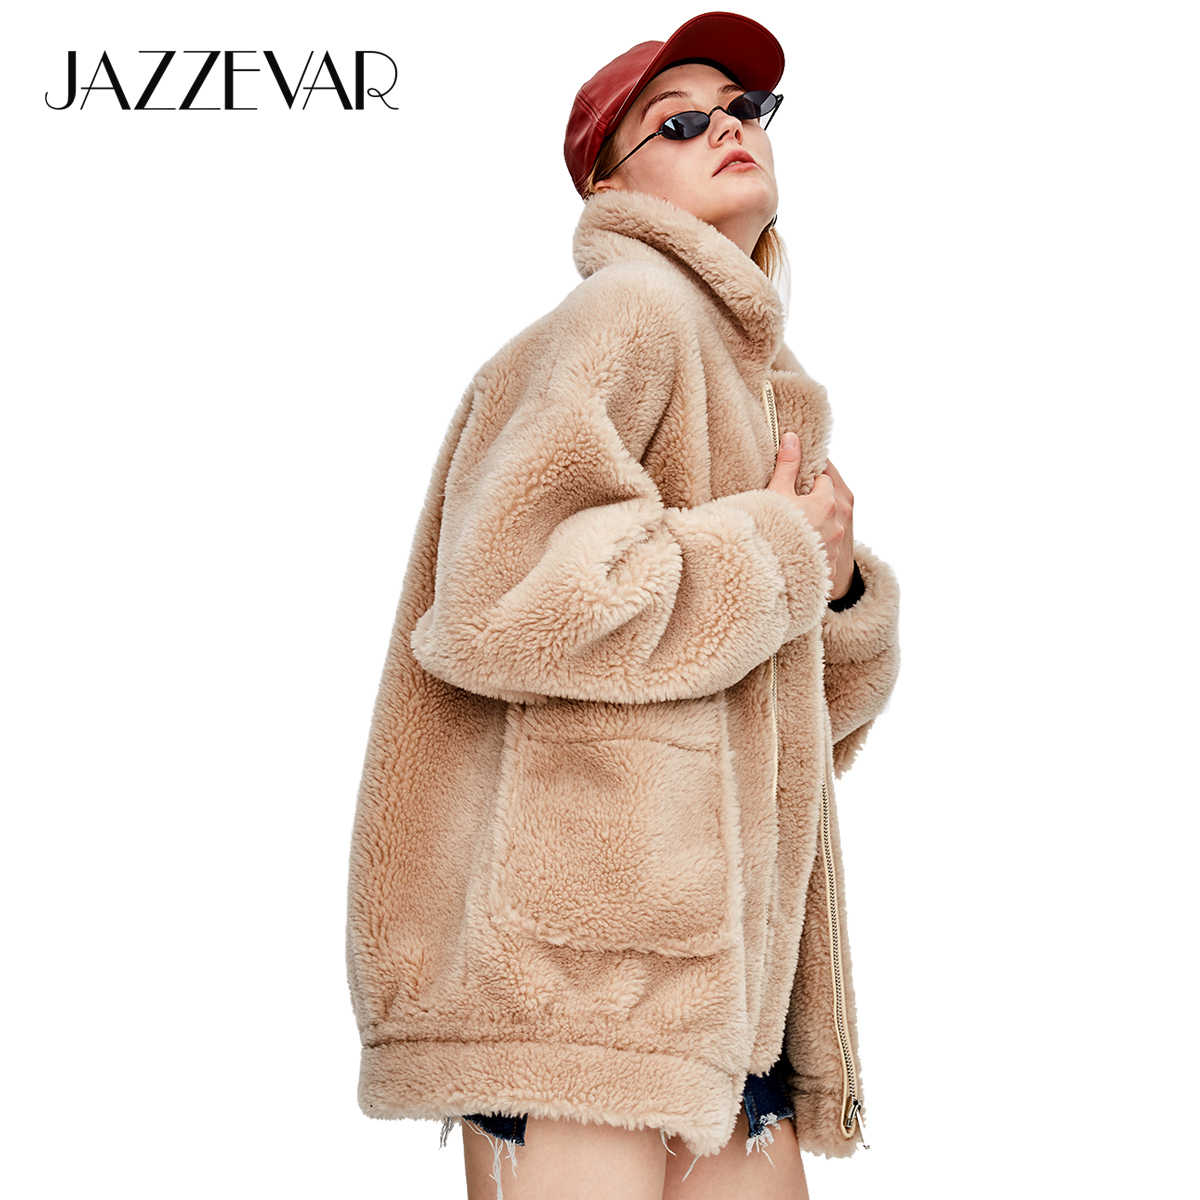 JAZZEVAR 2019 Winter New Fashion Street Womens Teddy Bear Icon Coat Real Sheep Fur Oversized Winter jacket Thick Warm Outerwear